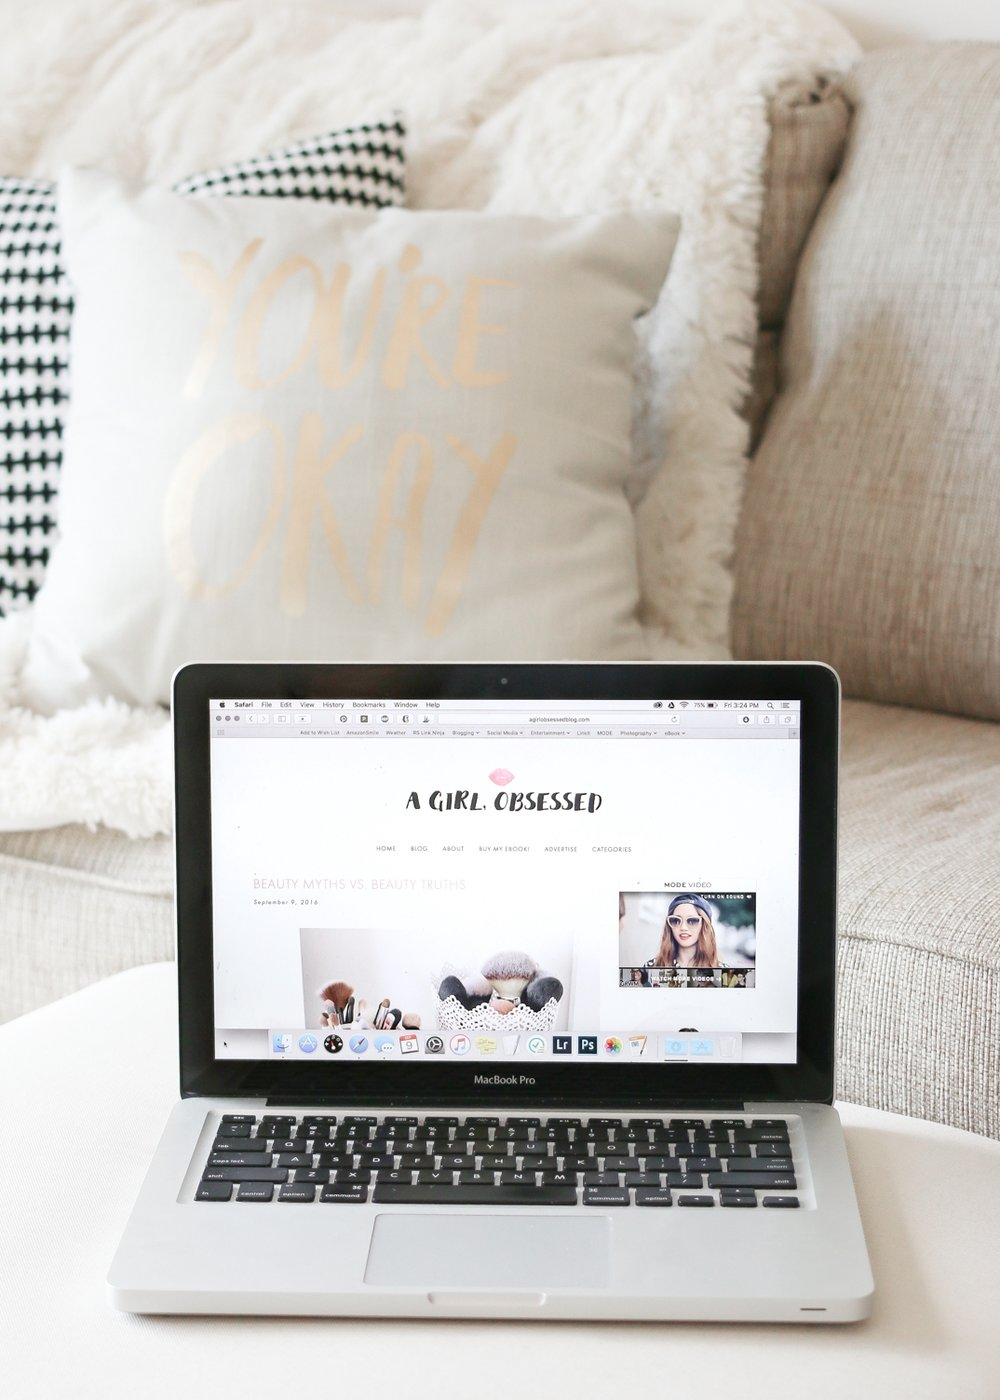 Important Lessons Learned From Blogging | A Girl, Obsessed